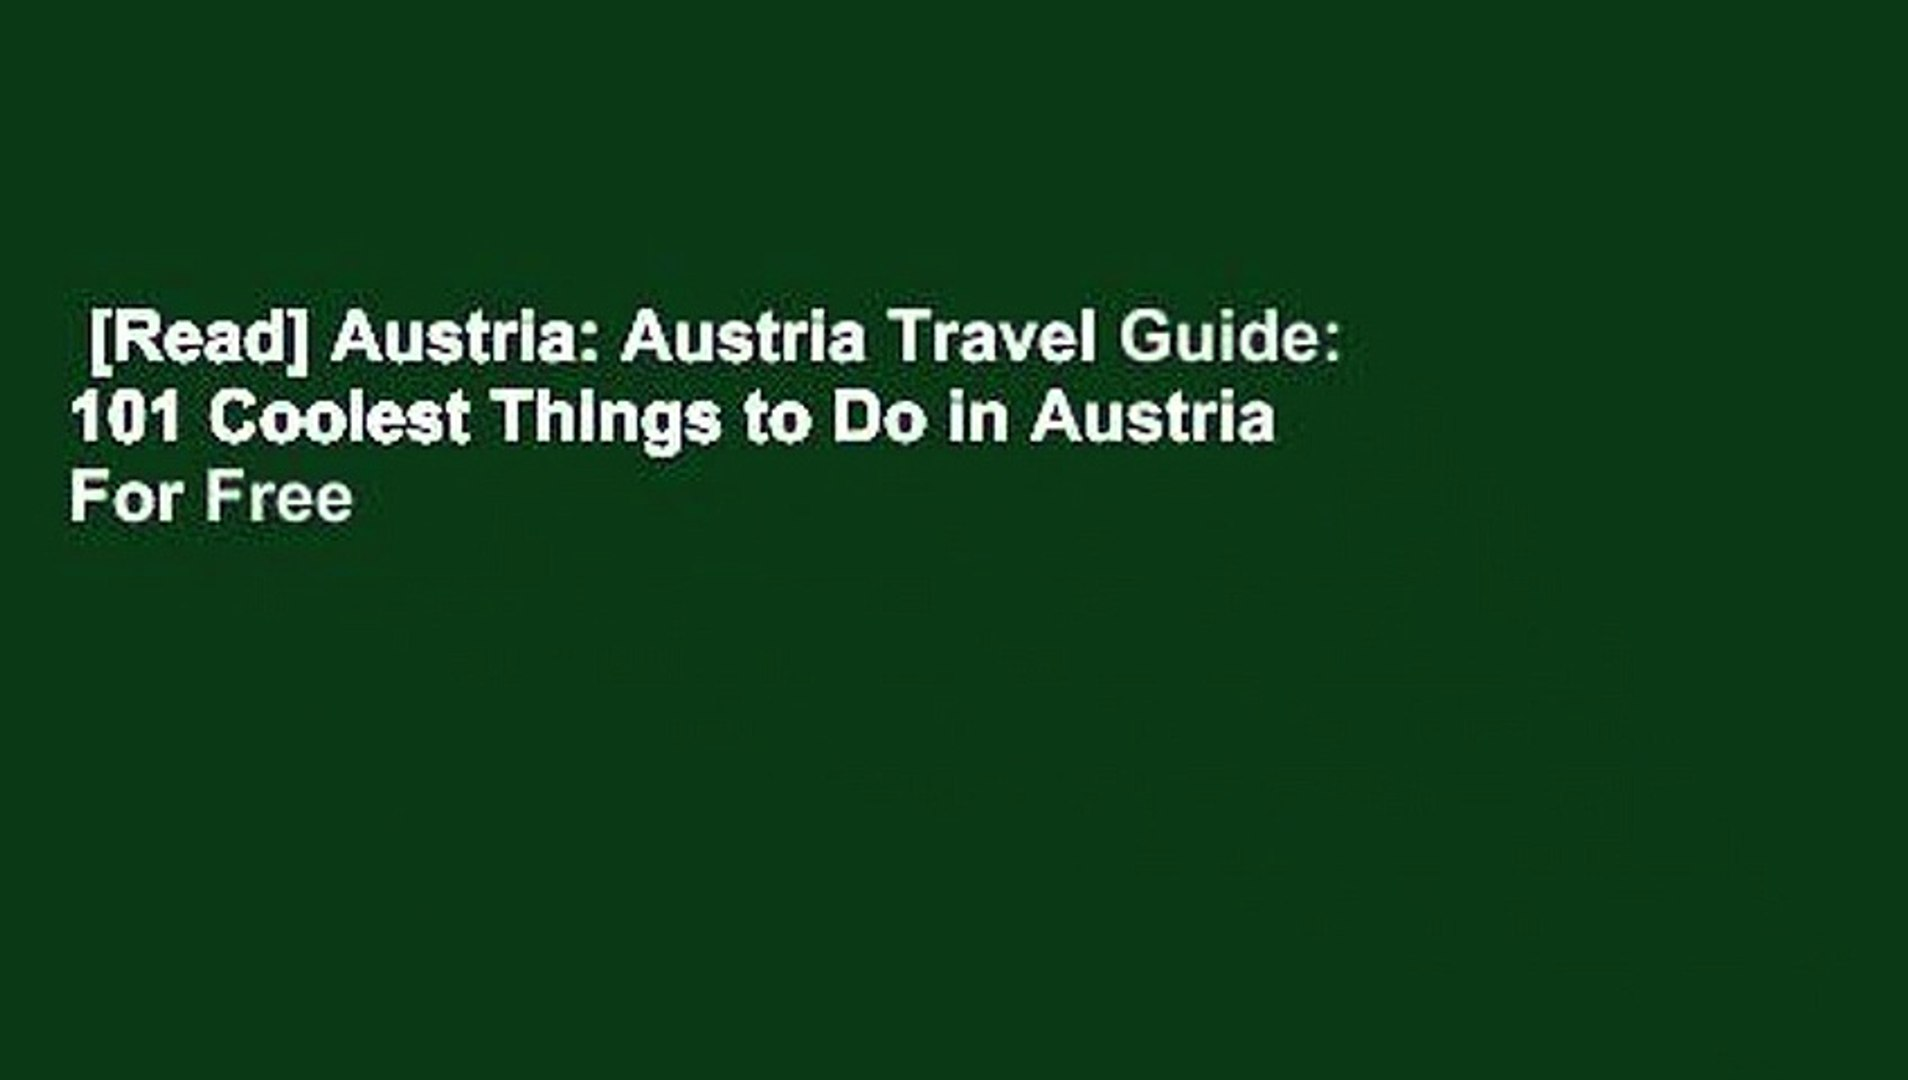 [Read] Austria: Austria Travel Guide: 101 Coolest Things to Do in Austria  For Free